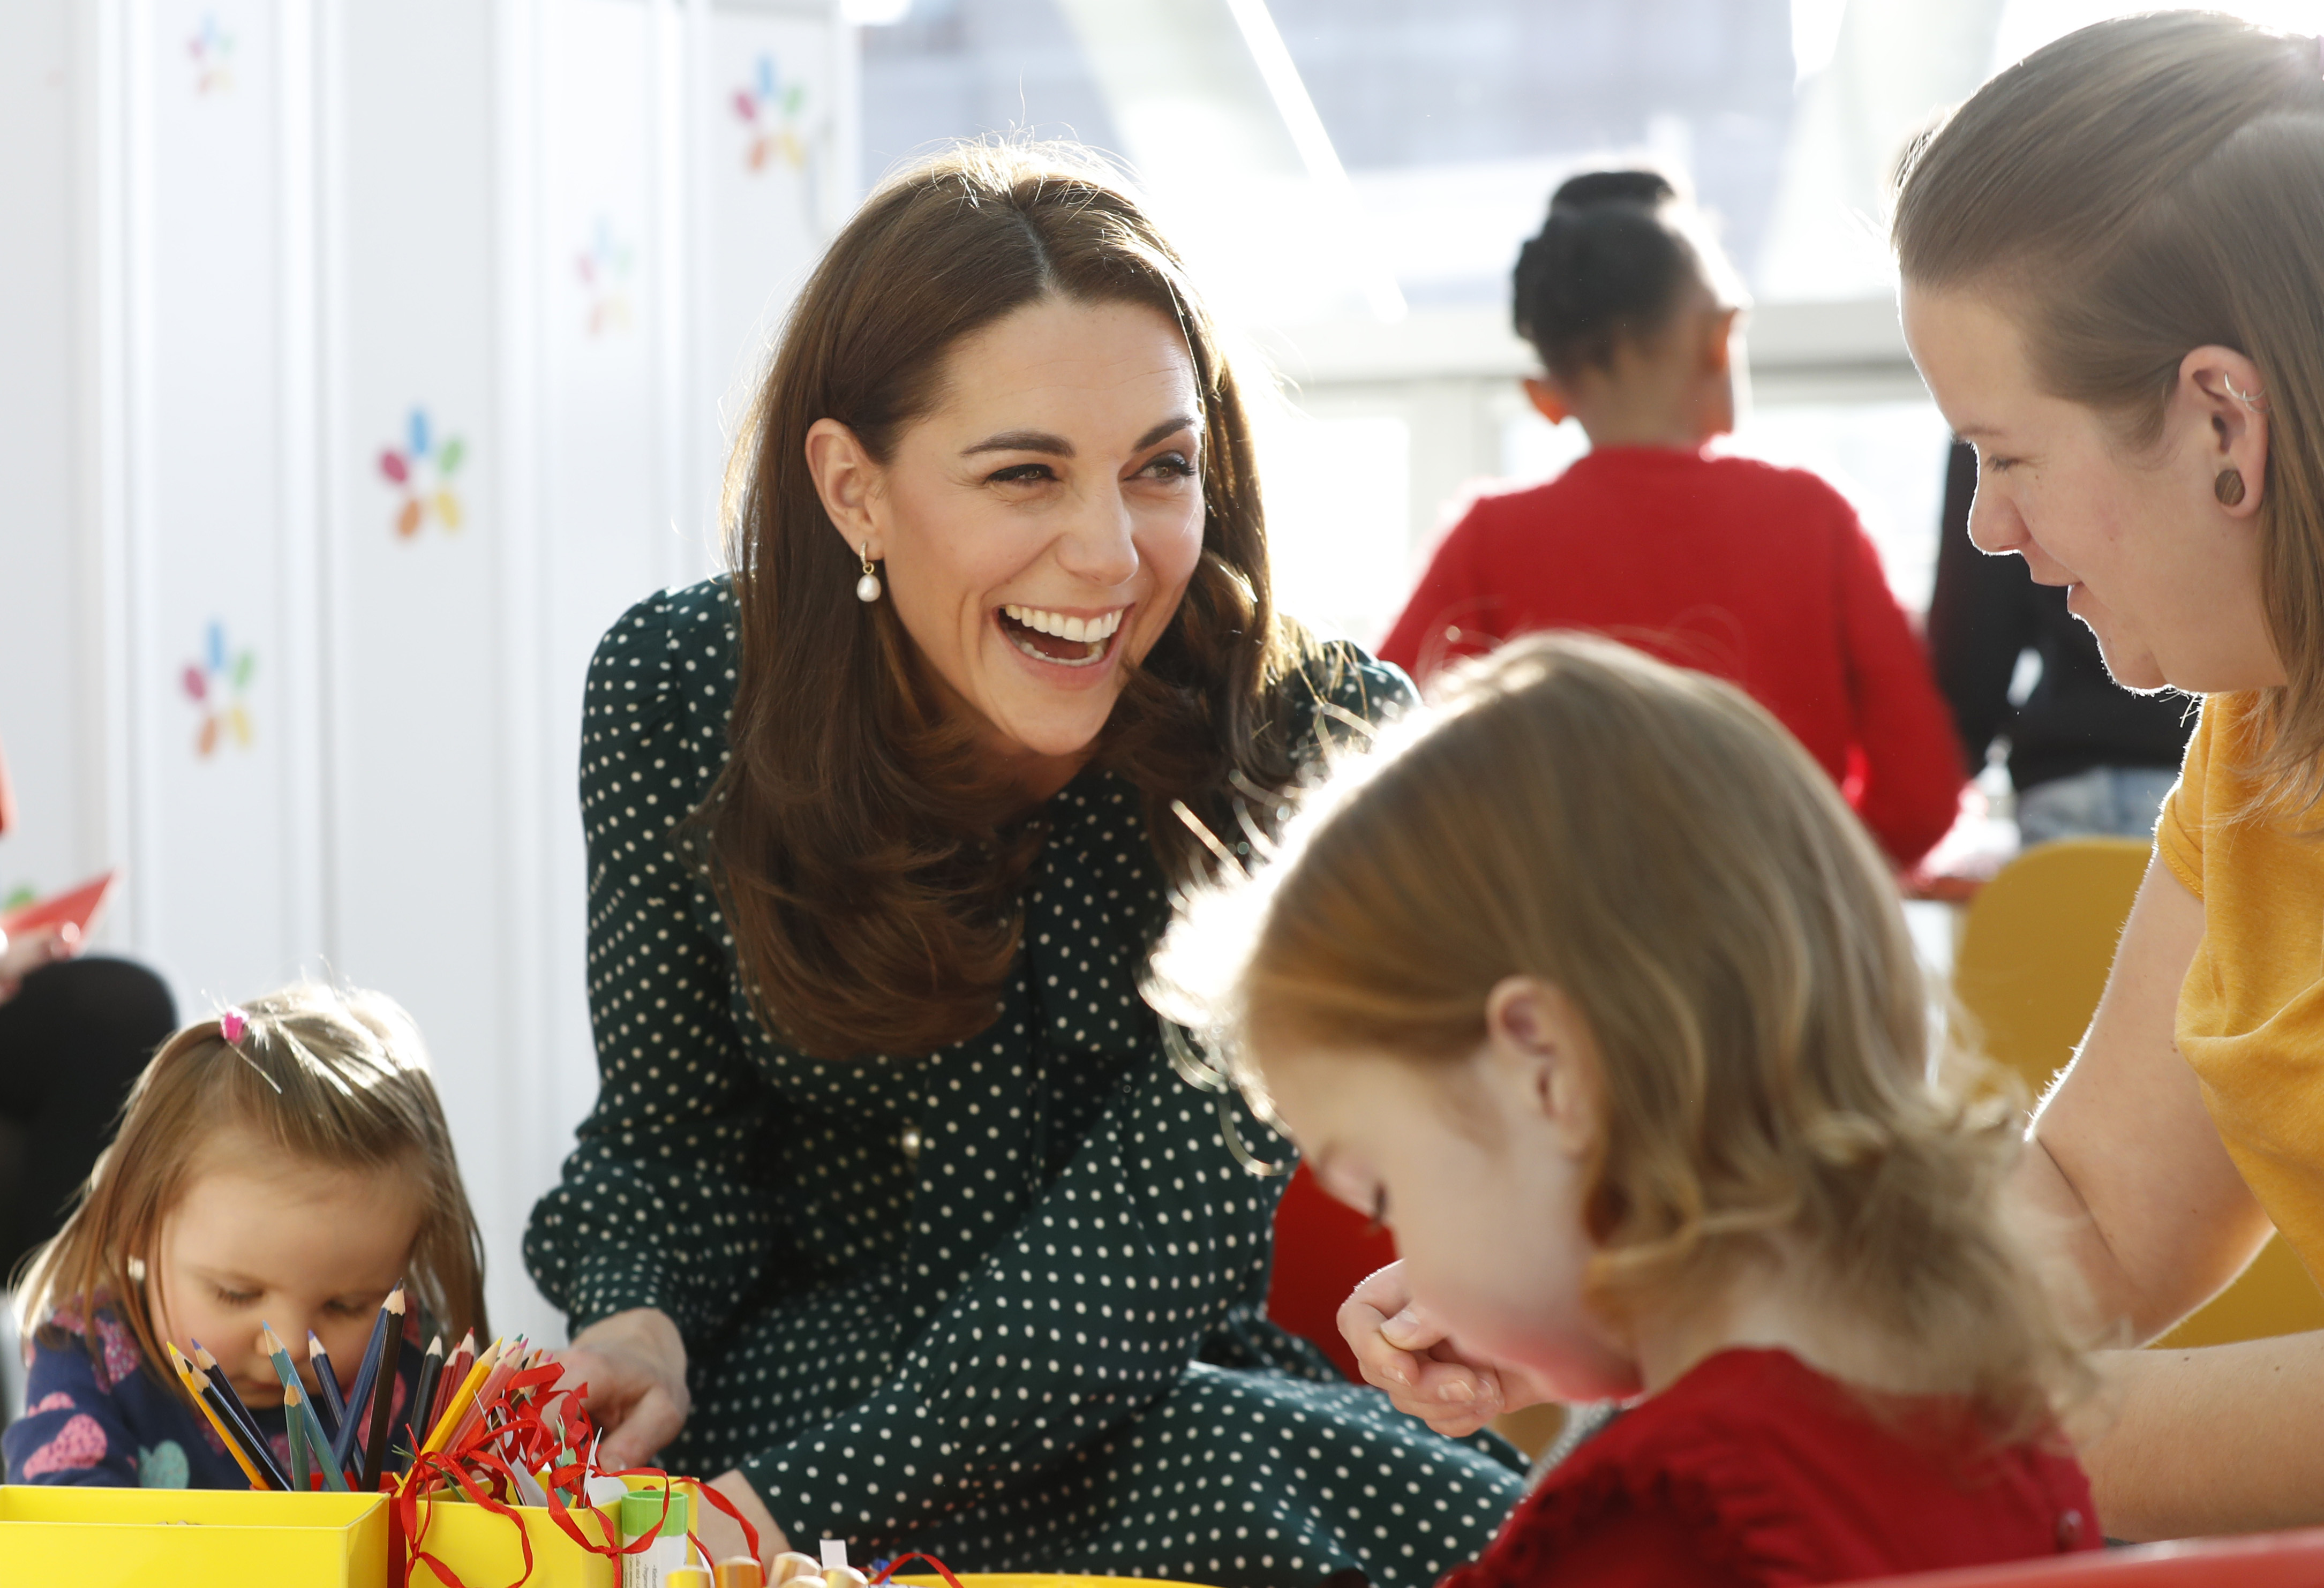 Duchess of Cambridge at a children's hospital